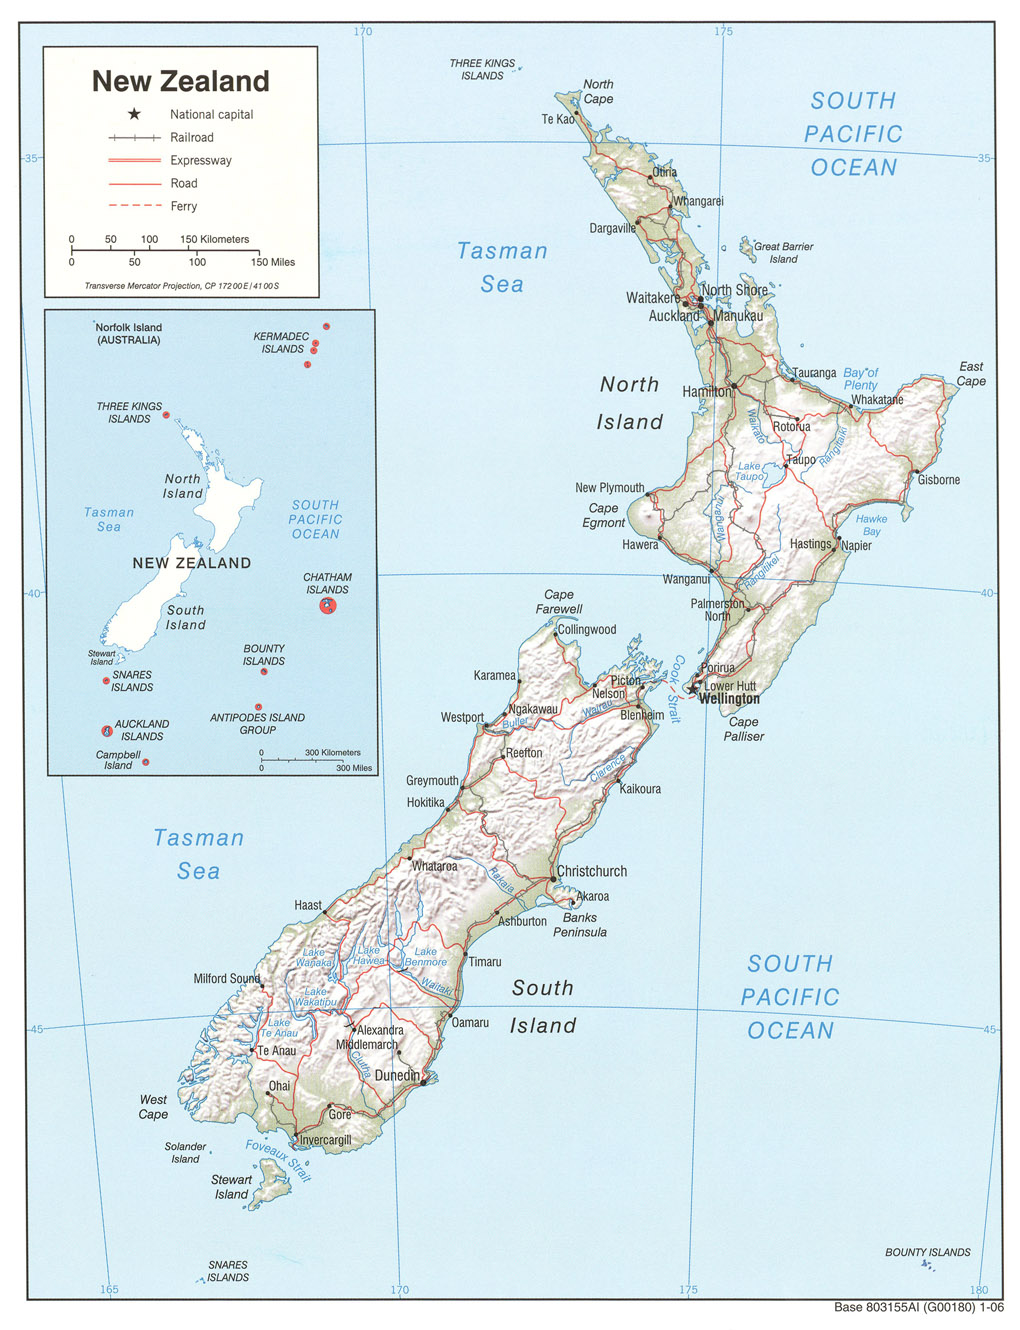 large detailed political and relief map of new zealand with roads and cities